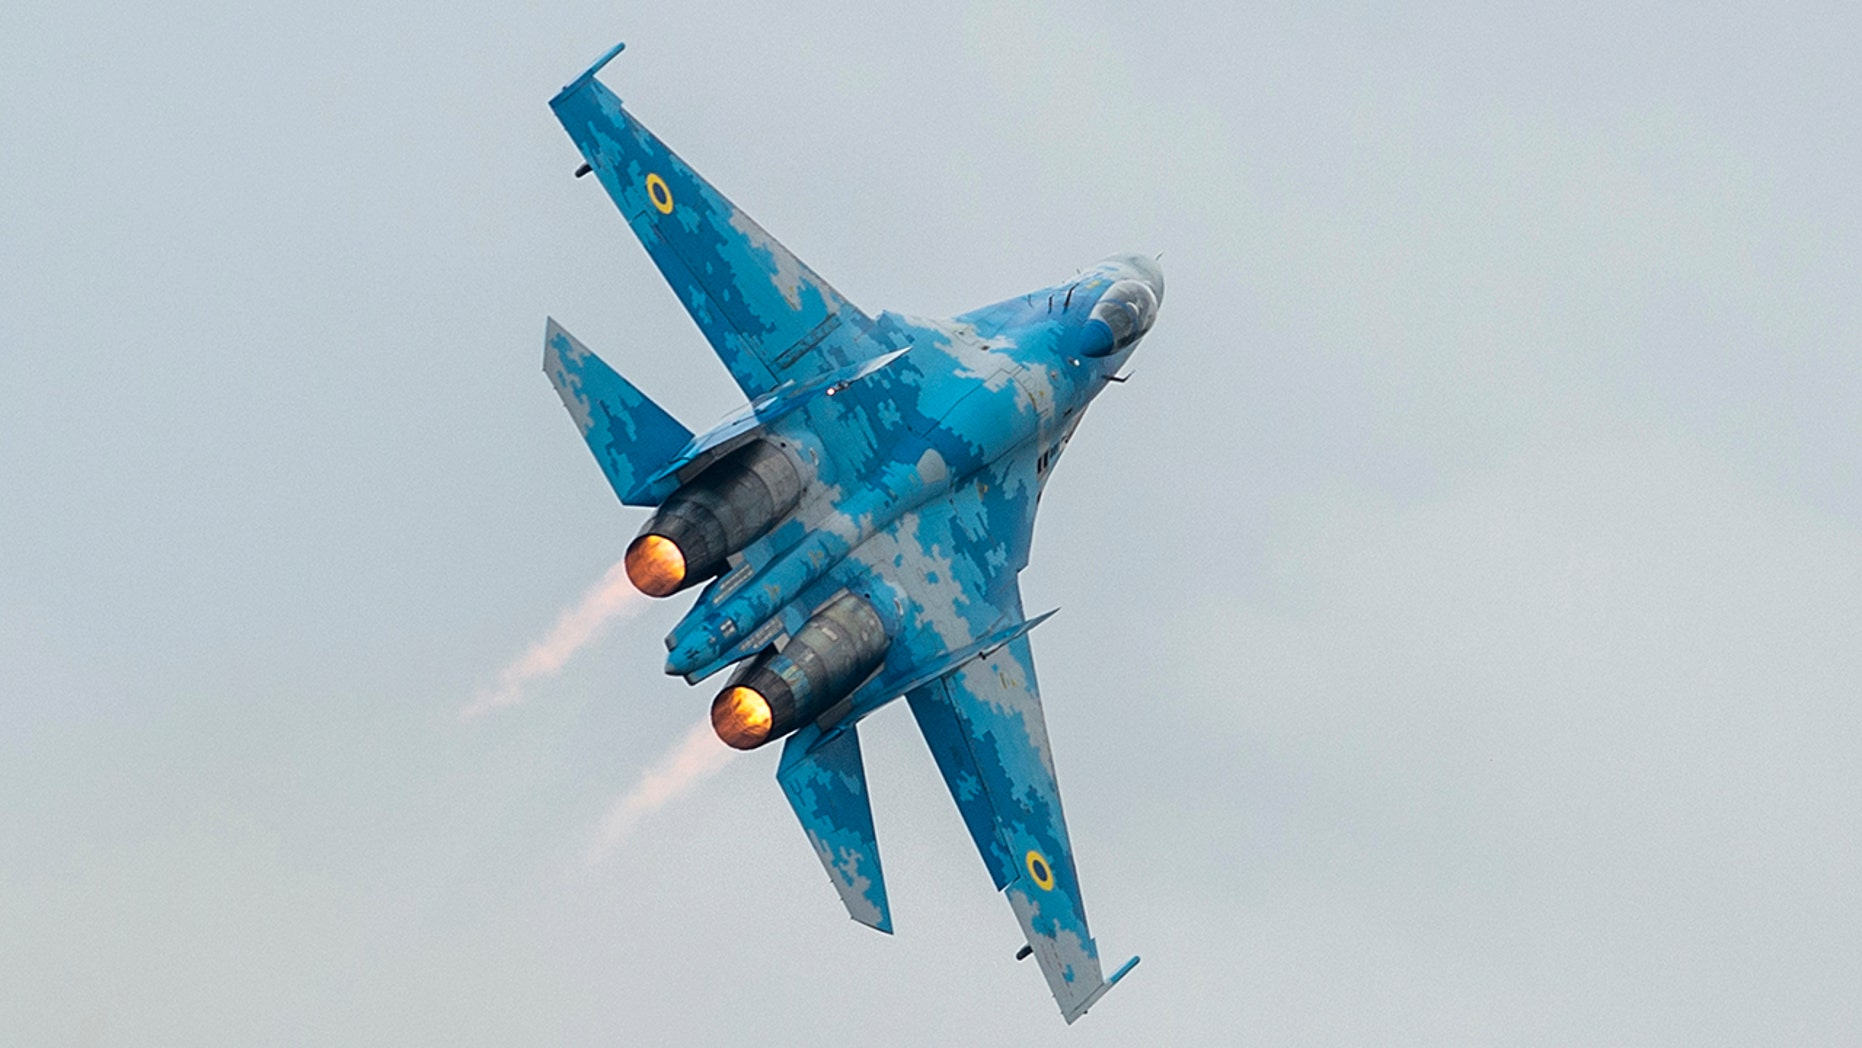 2 die in fighter jet crash in Ukraine, US pilot